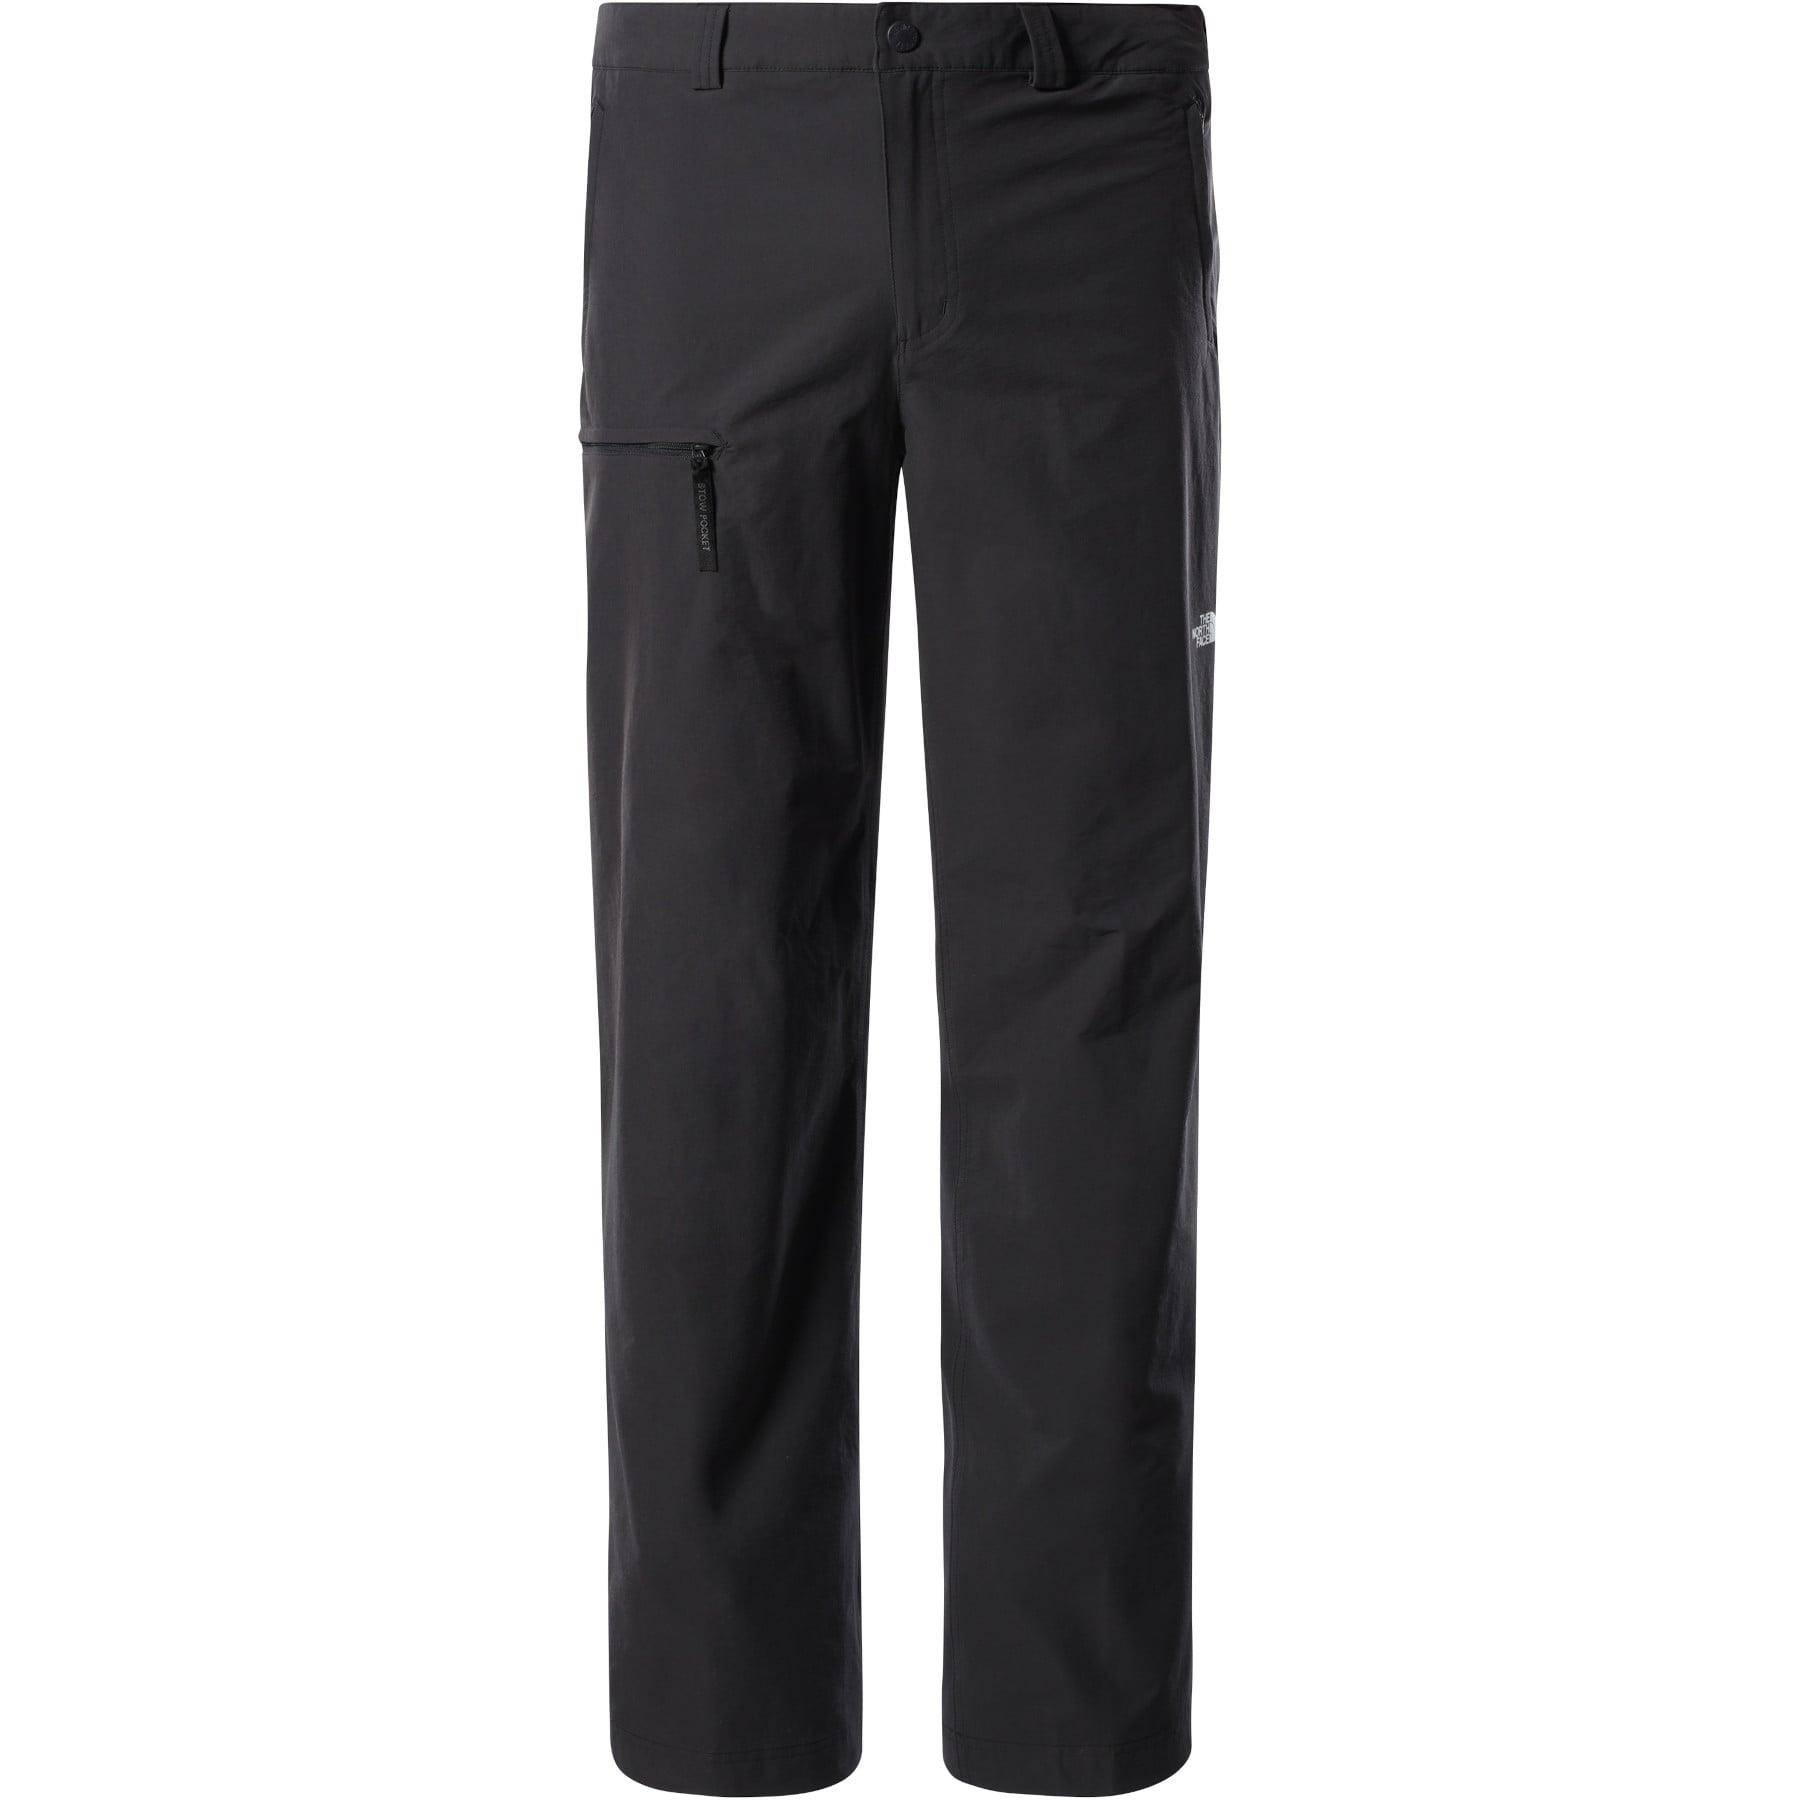 Spodnie trekkingowe The North Face Resolve T3 T9556U0C5